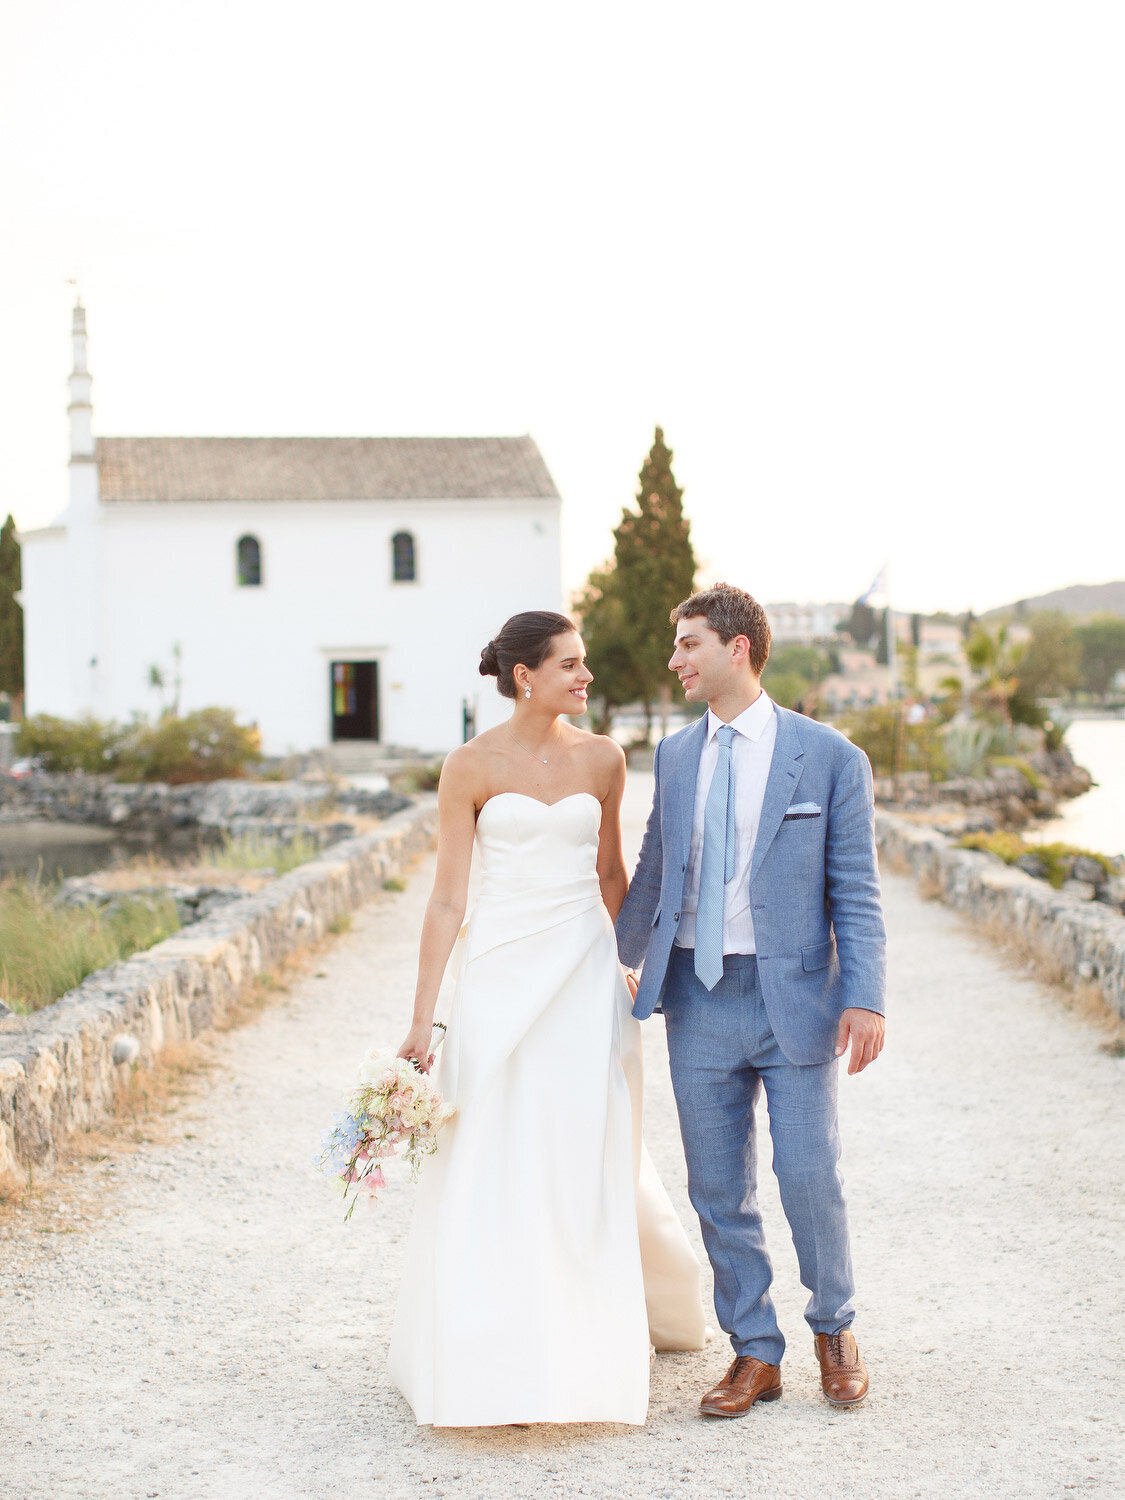 Greece-film-wedding-photography-by-Kostis-Mouselimis_087